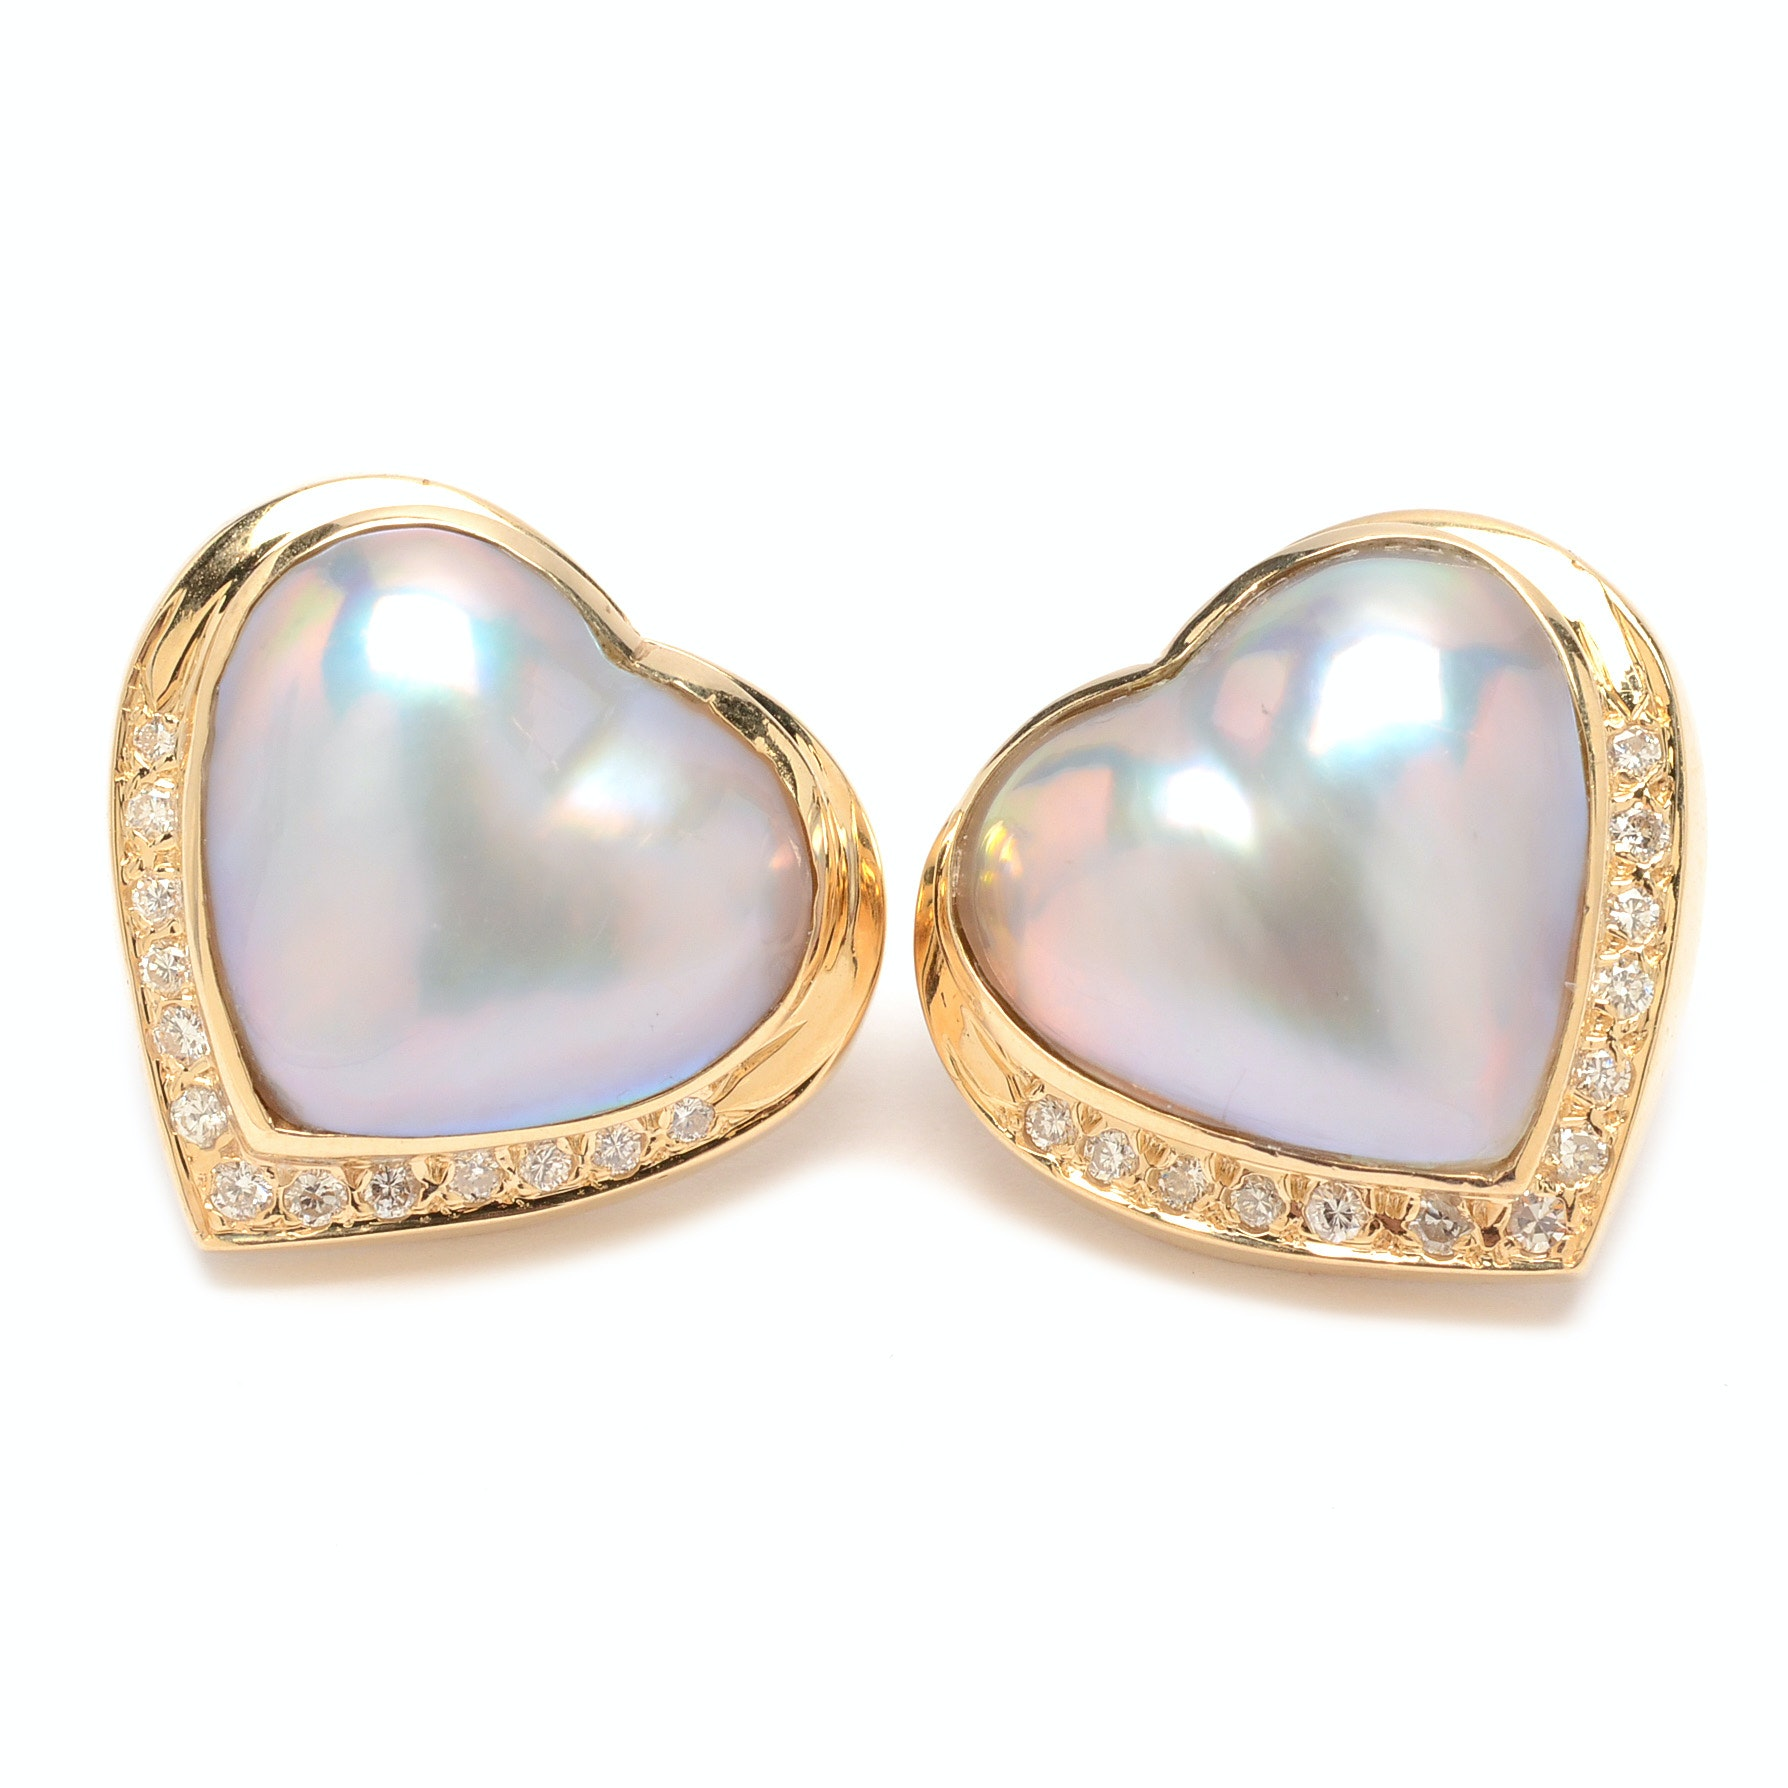 14K Yellow Gold Cultured Mabe Pearl and Diamond Heart Earrings